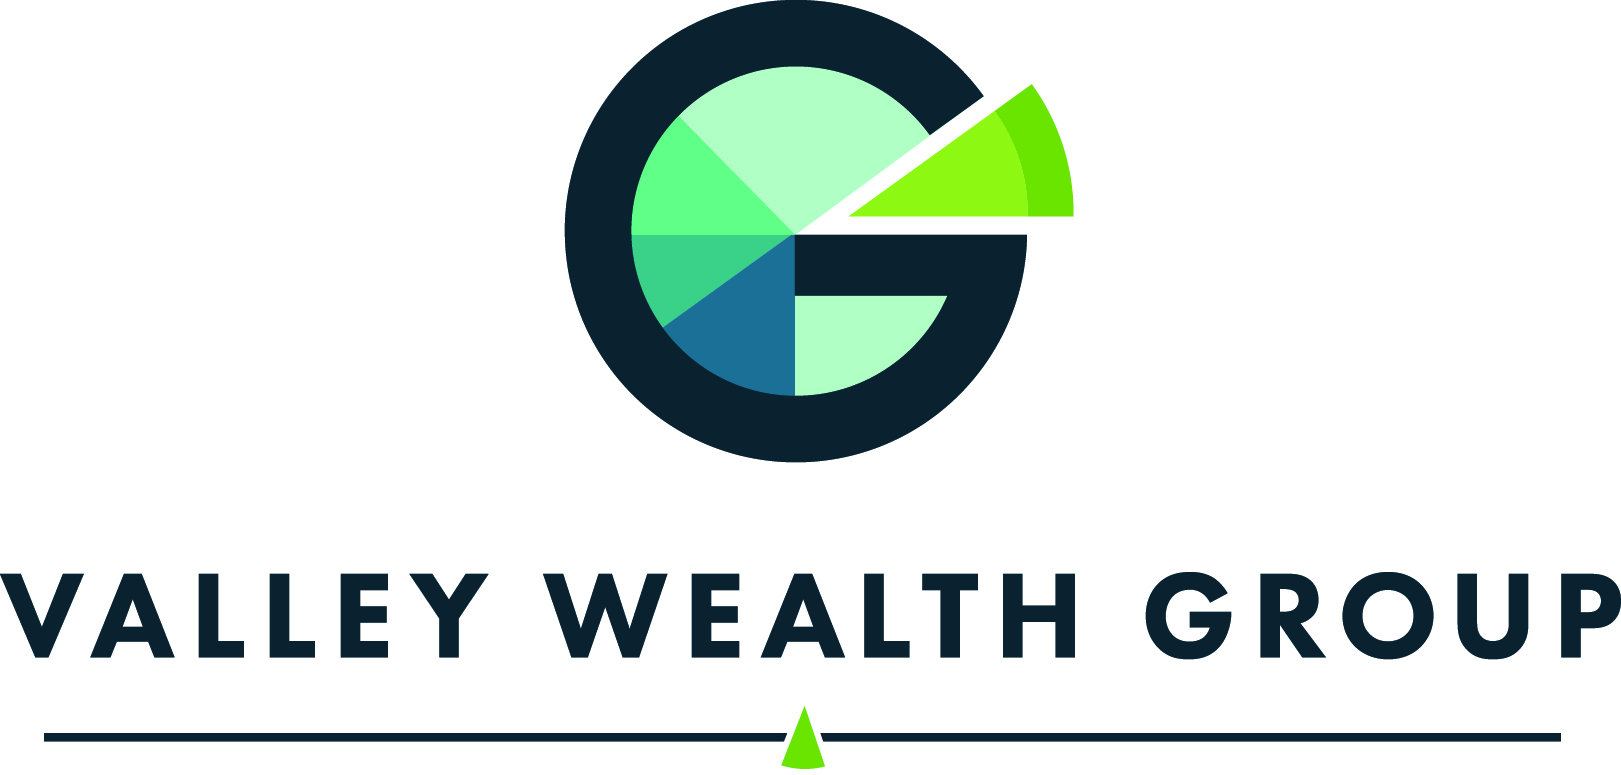 Valley Wealth Group